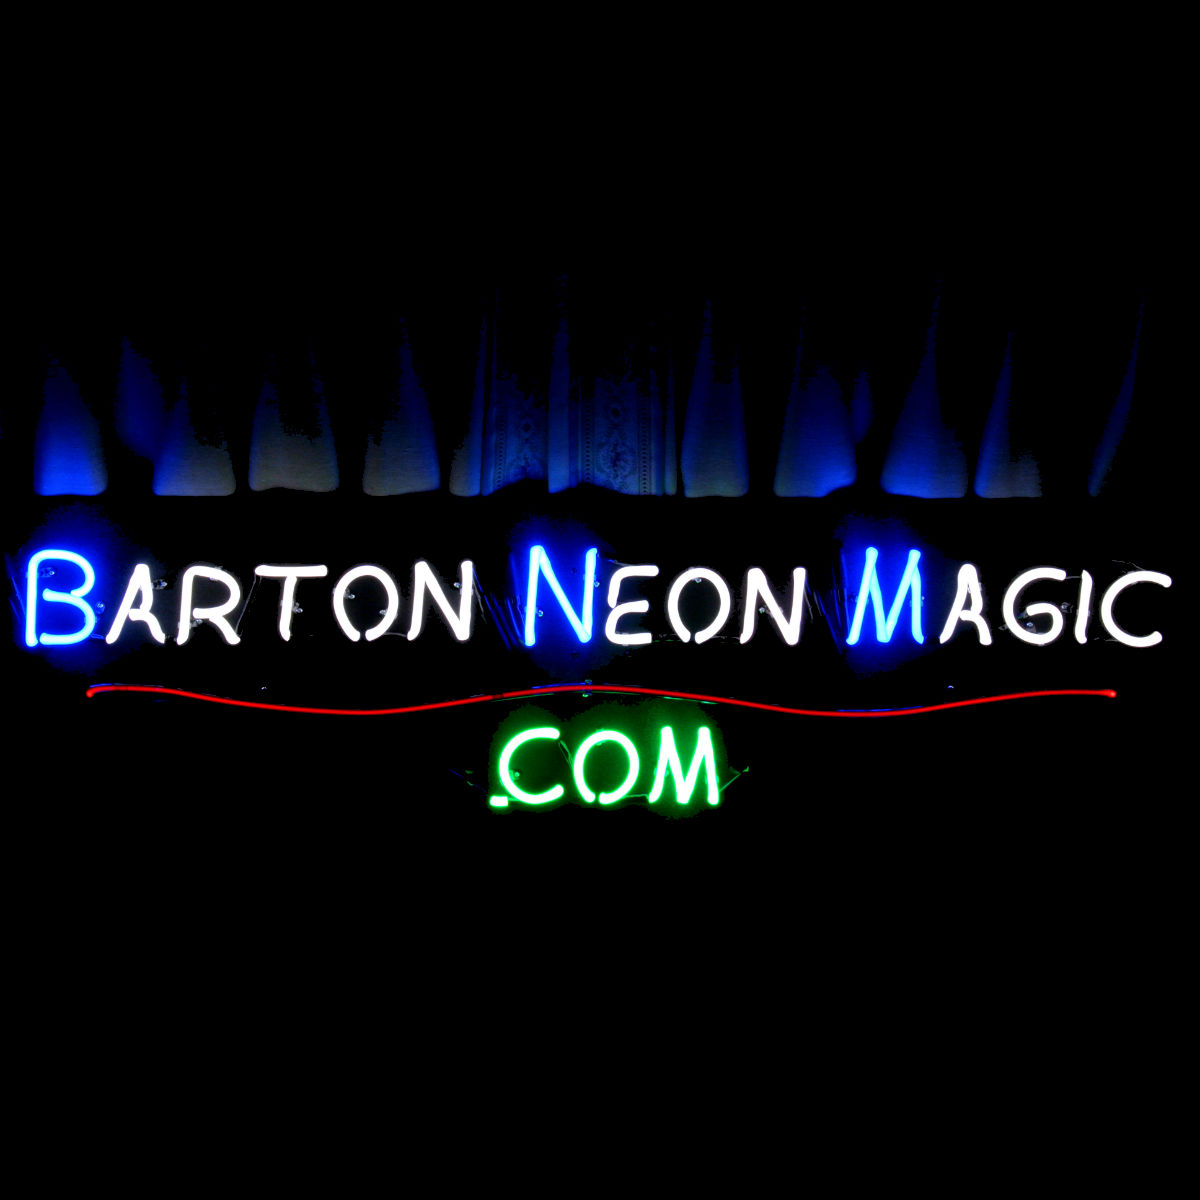 Designer Neon Light Sculptures, Chandeliers, and Artworks by John Barton - BartonNeonMagic.com